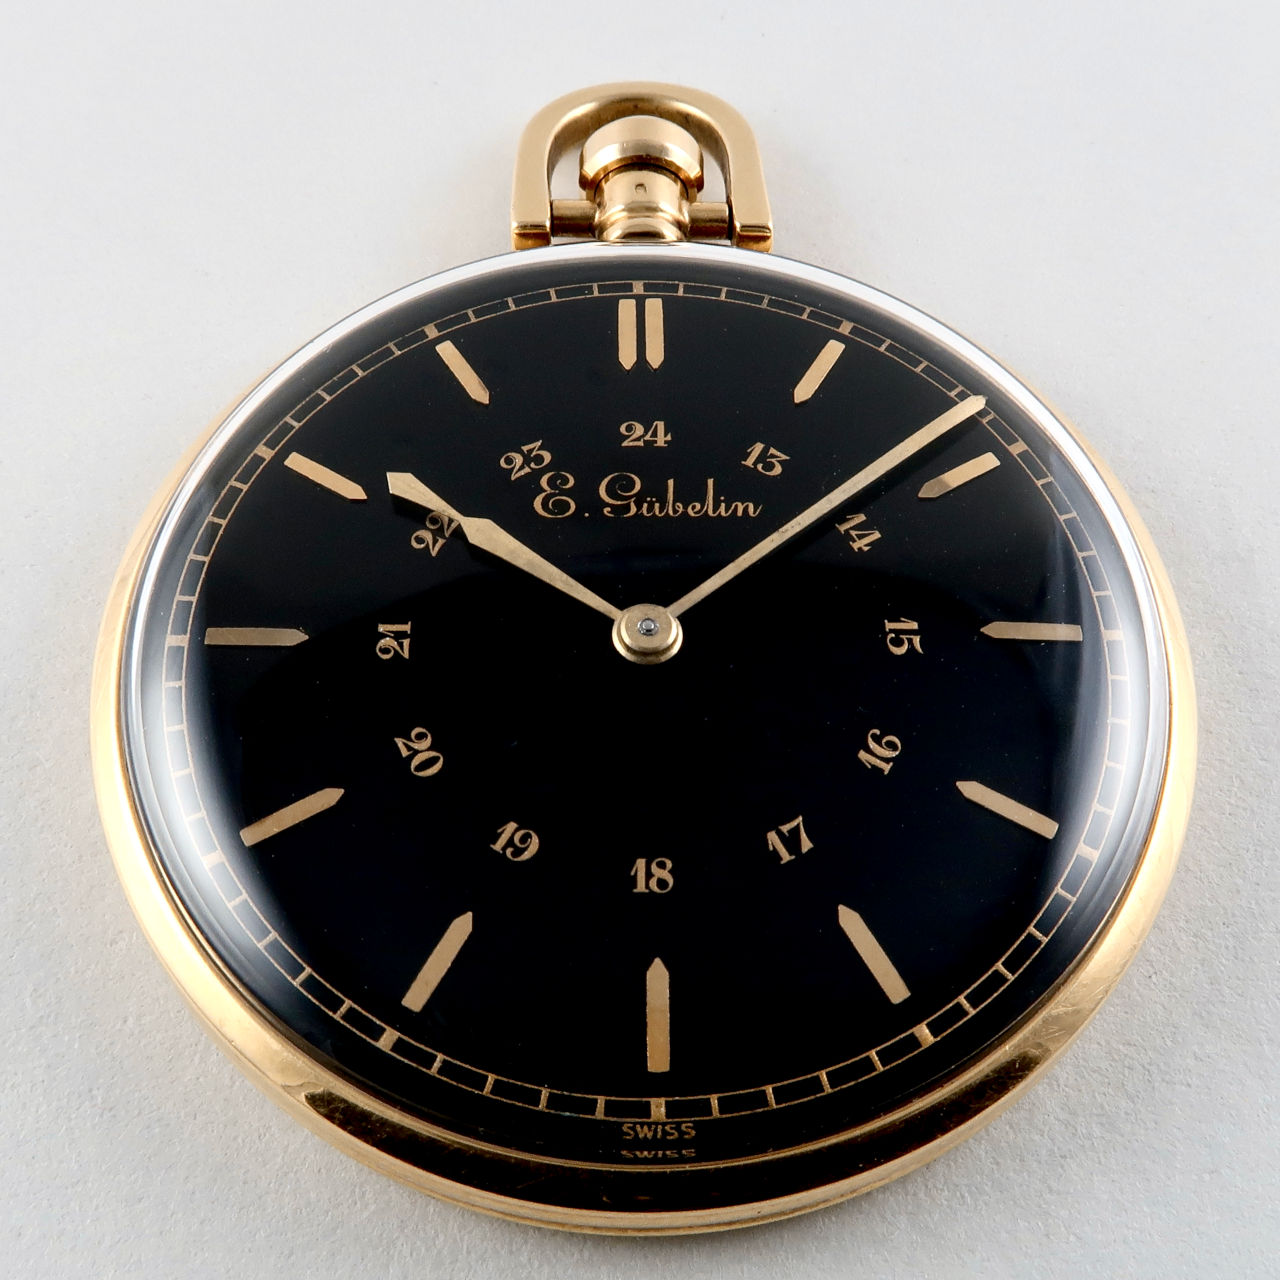 lecoultre-retailed-by-gubelin-circa-1935-18ct-gold-wygbd